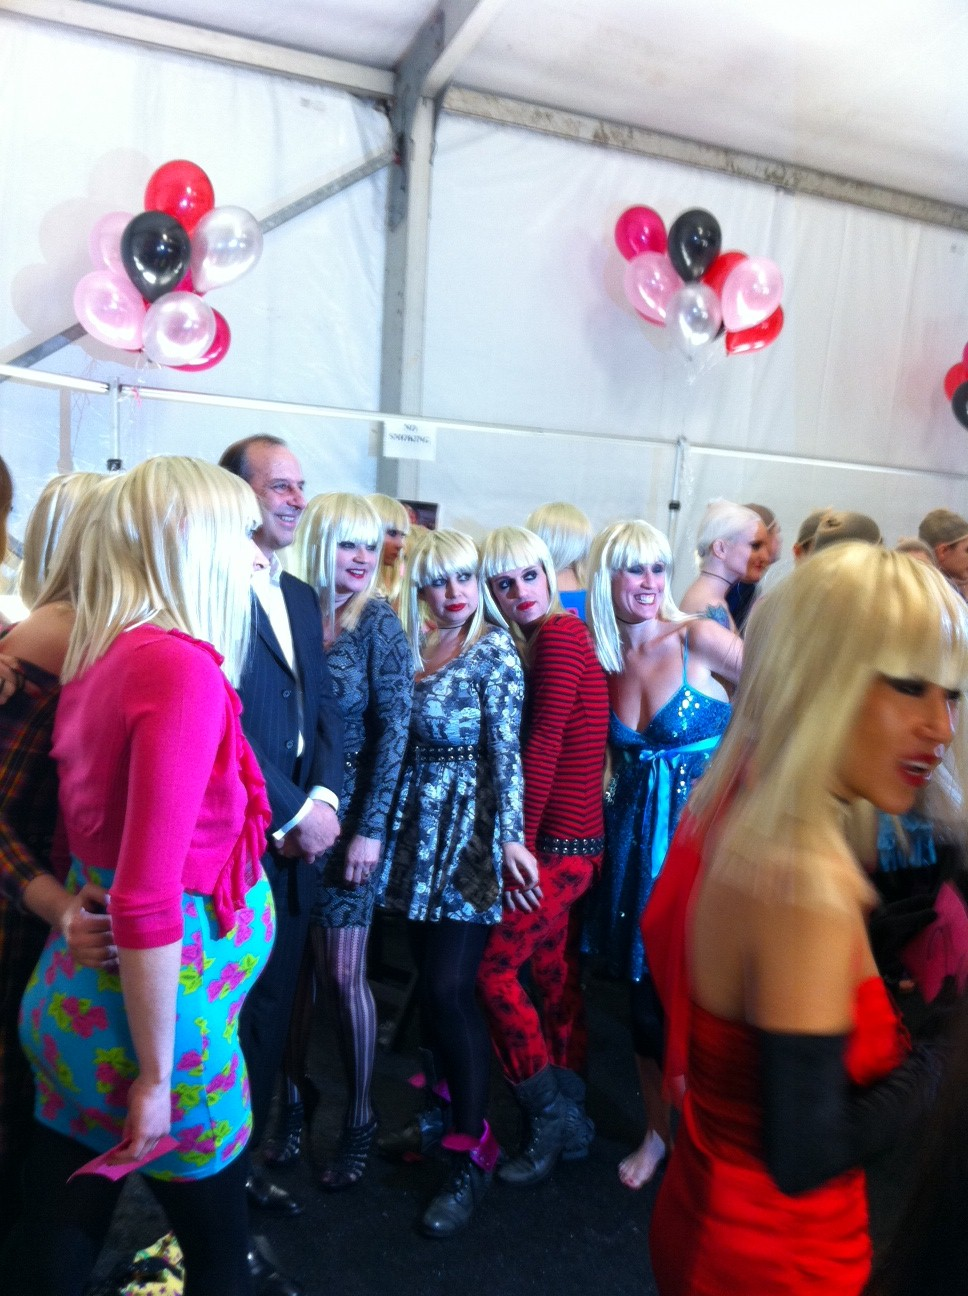 Lots of Betseys backstage